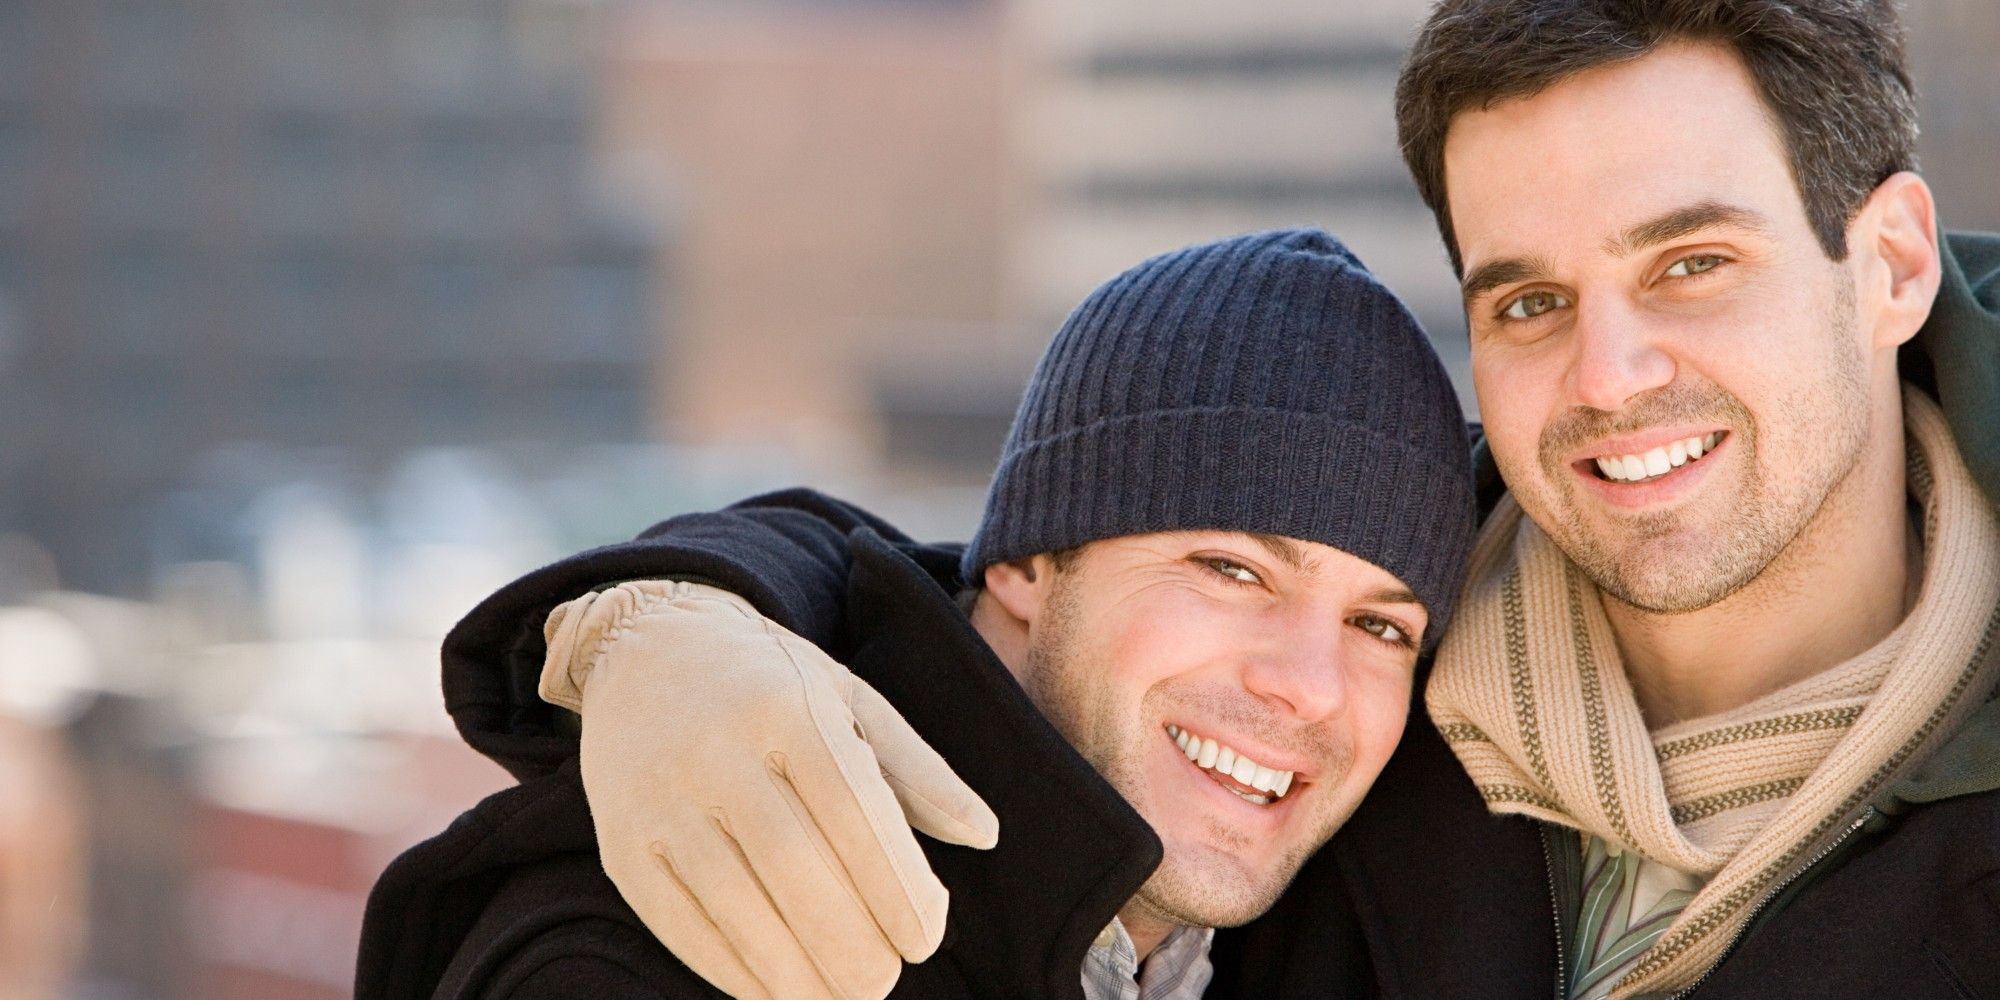 Here's the best free gay chat app